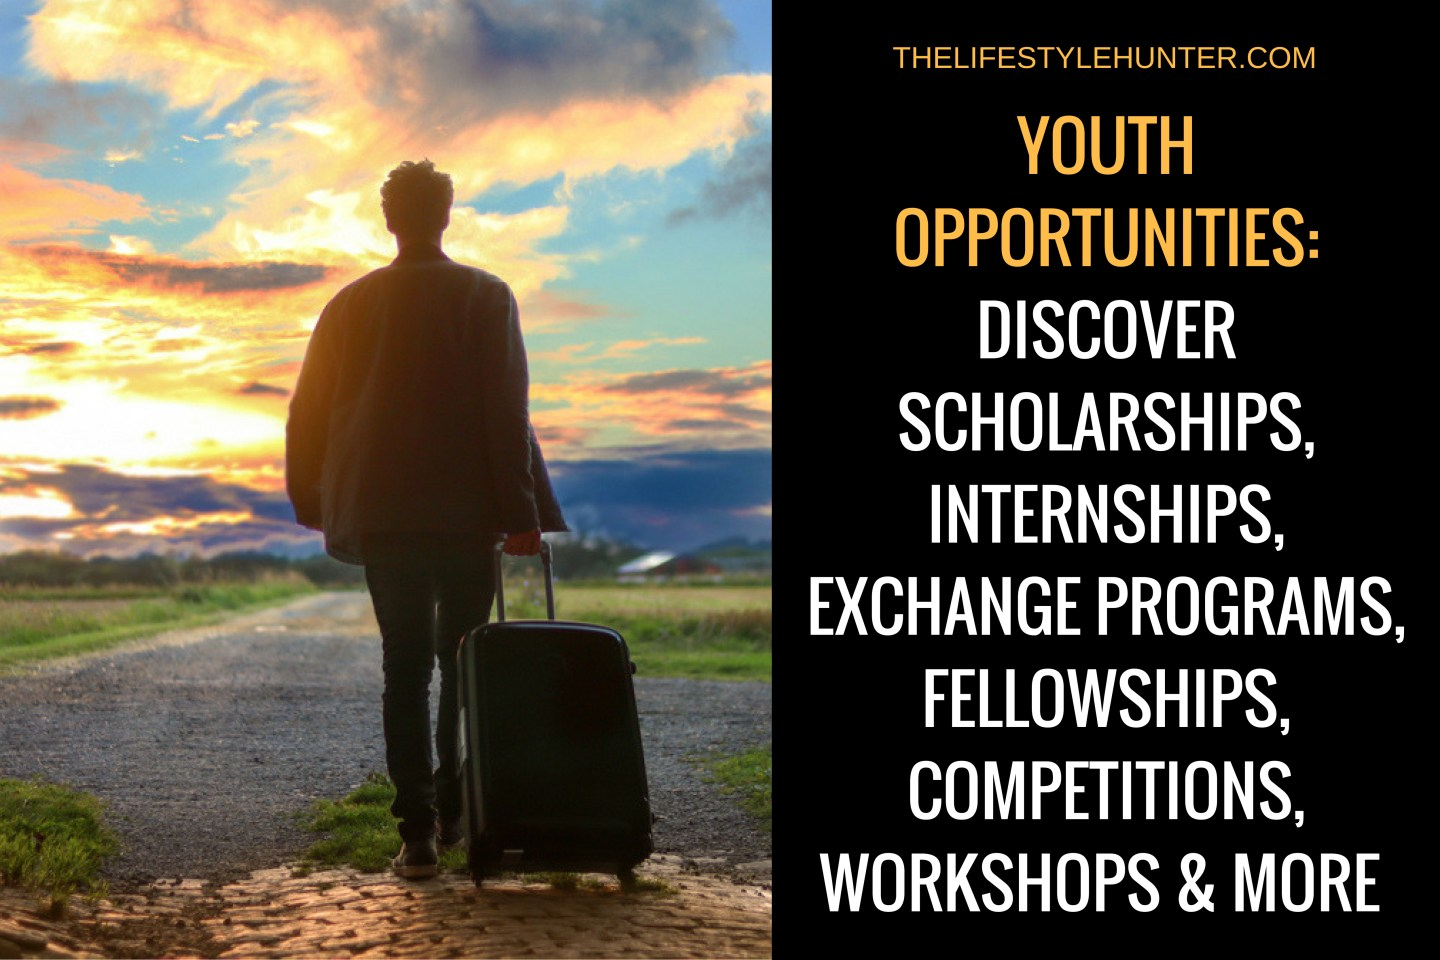 Youth Opportunities: discover scholarships, internships, exchange programs, fellowships, competitions, workshops and more